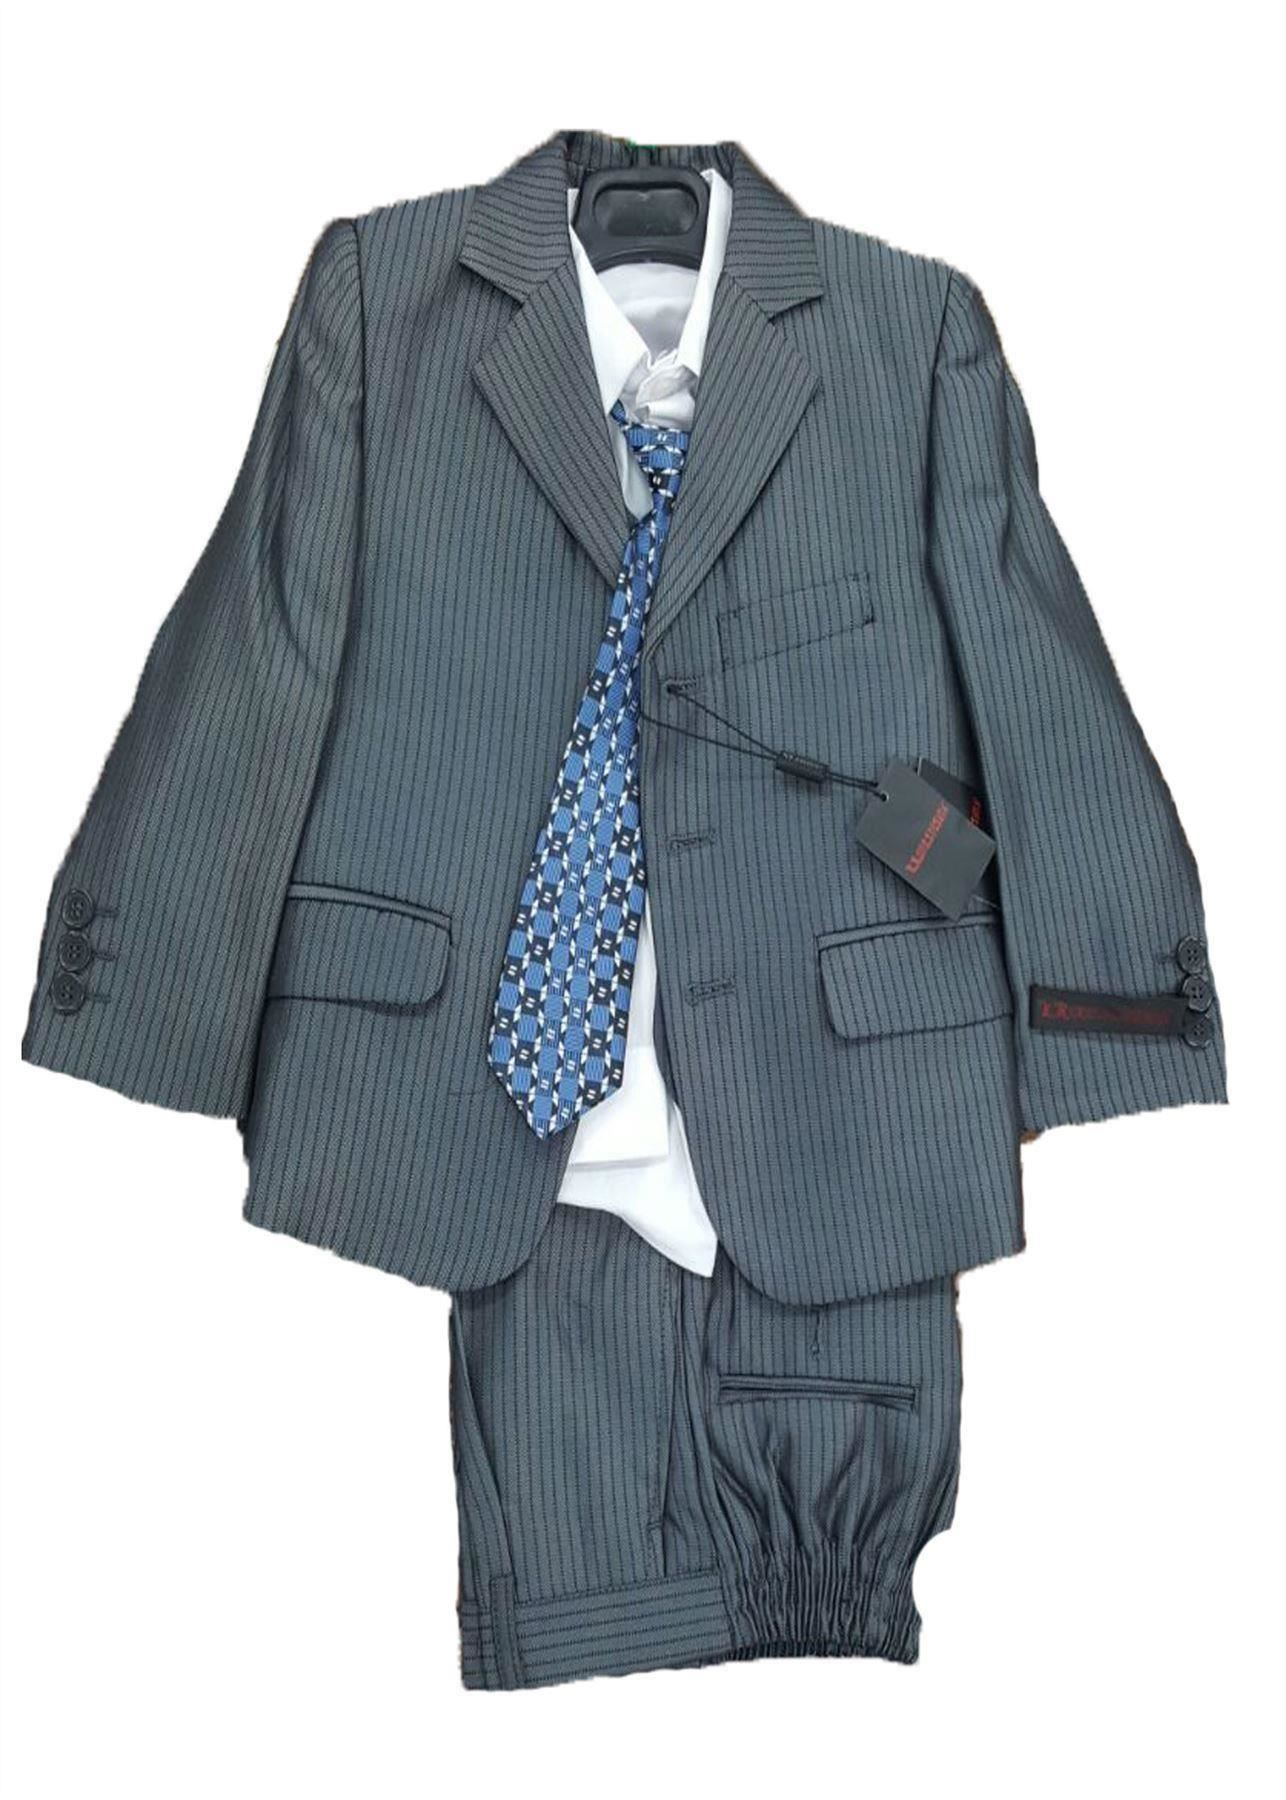 New Boys Formal Wedding Party 3/5 Piece Waistcoat Jacket Suit Ages 1 To 13 Yrs | EBay